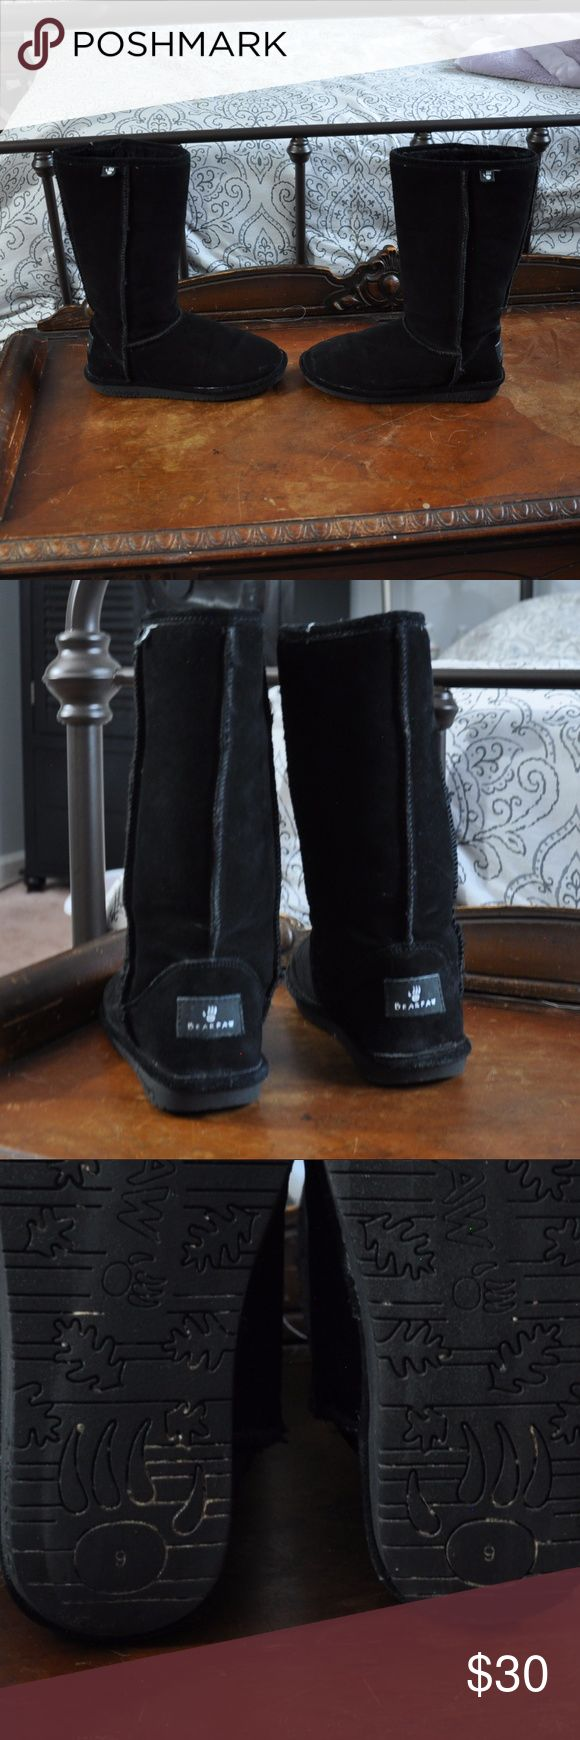 Bear Paw Black Boots Worn a few times, in good condition Warm, soft, furry and perfect for keeping your feet warm on a cold night! BearPaw Shoes Winter & Rain Boots